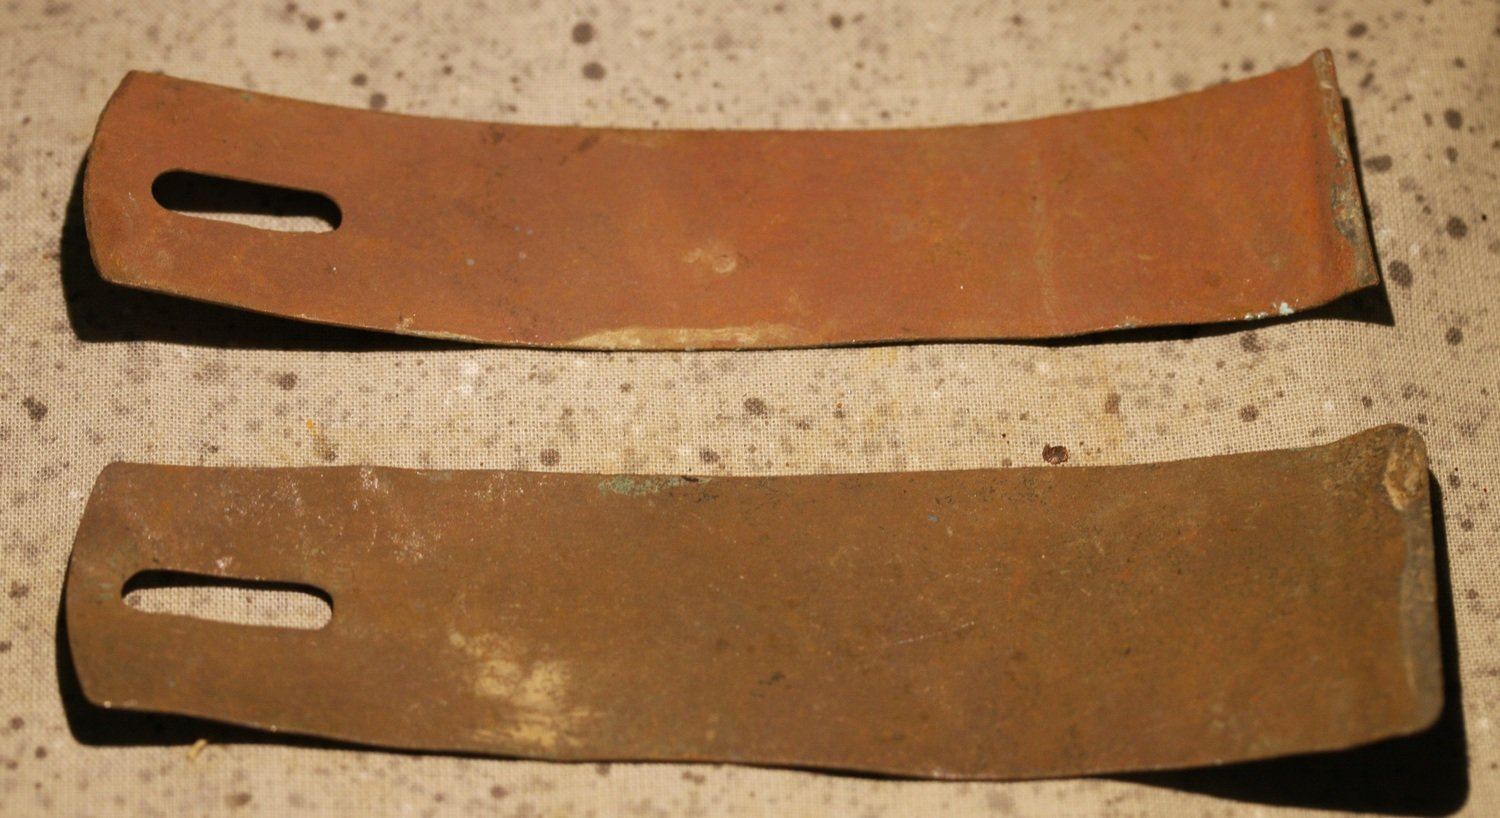 JUST ADDED ON 11/8 - THE BATTLE OF SPOTSYLVANIA - Two Pieces of Soldier's Shoulder Scales